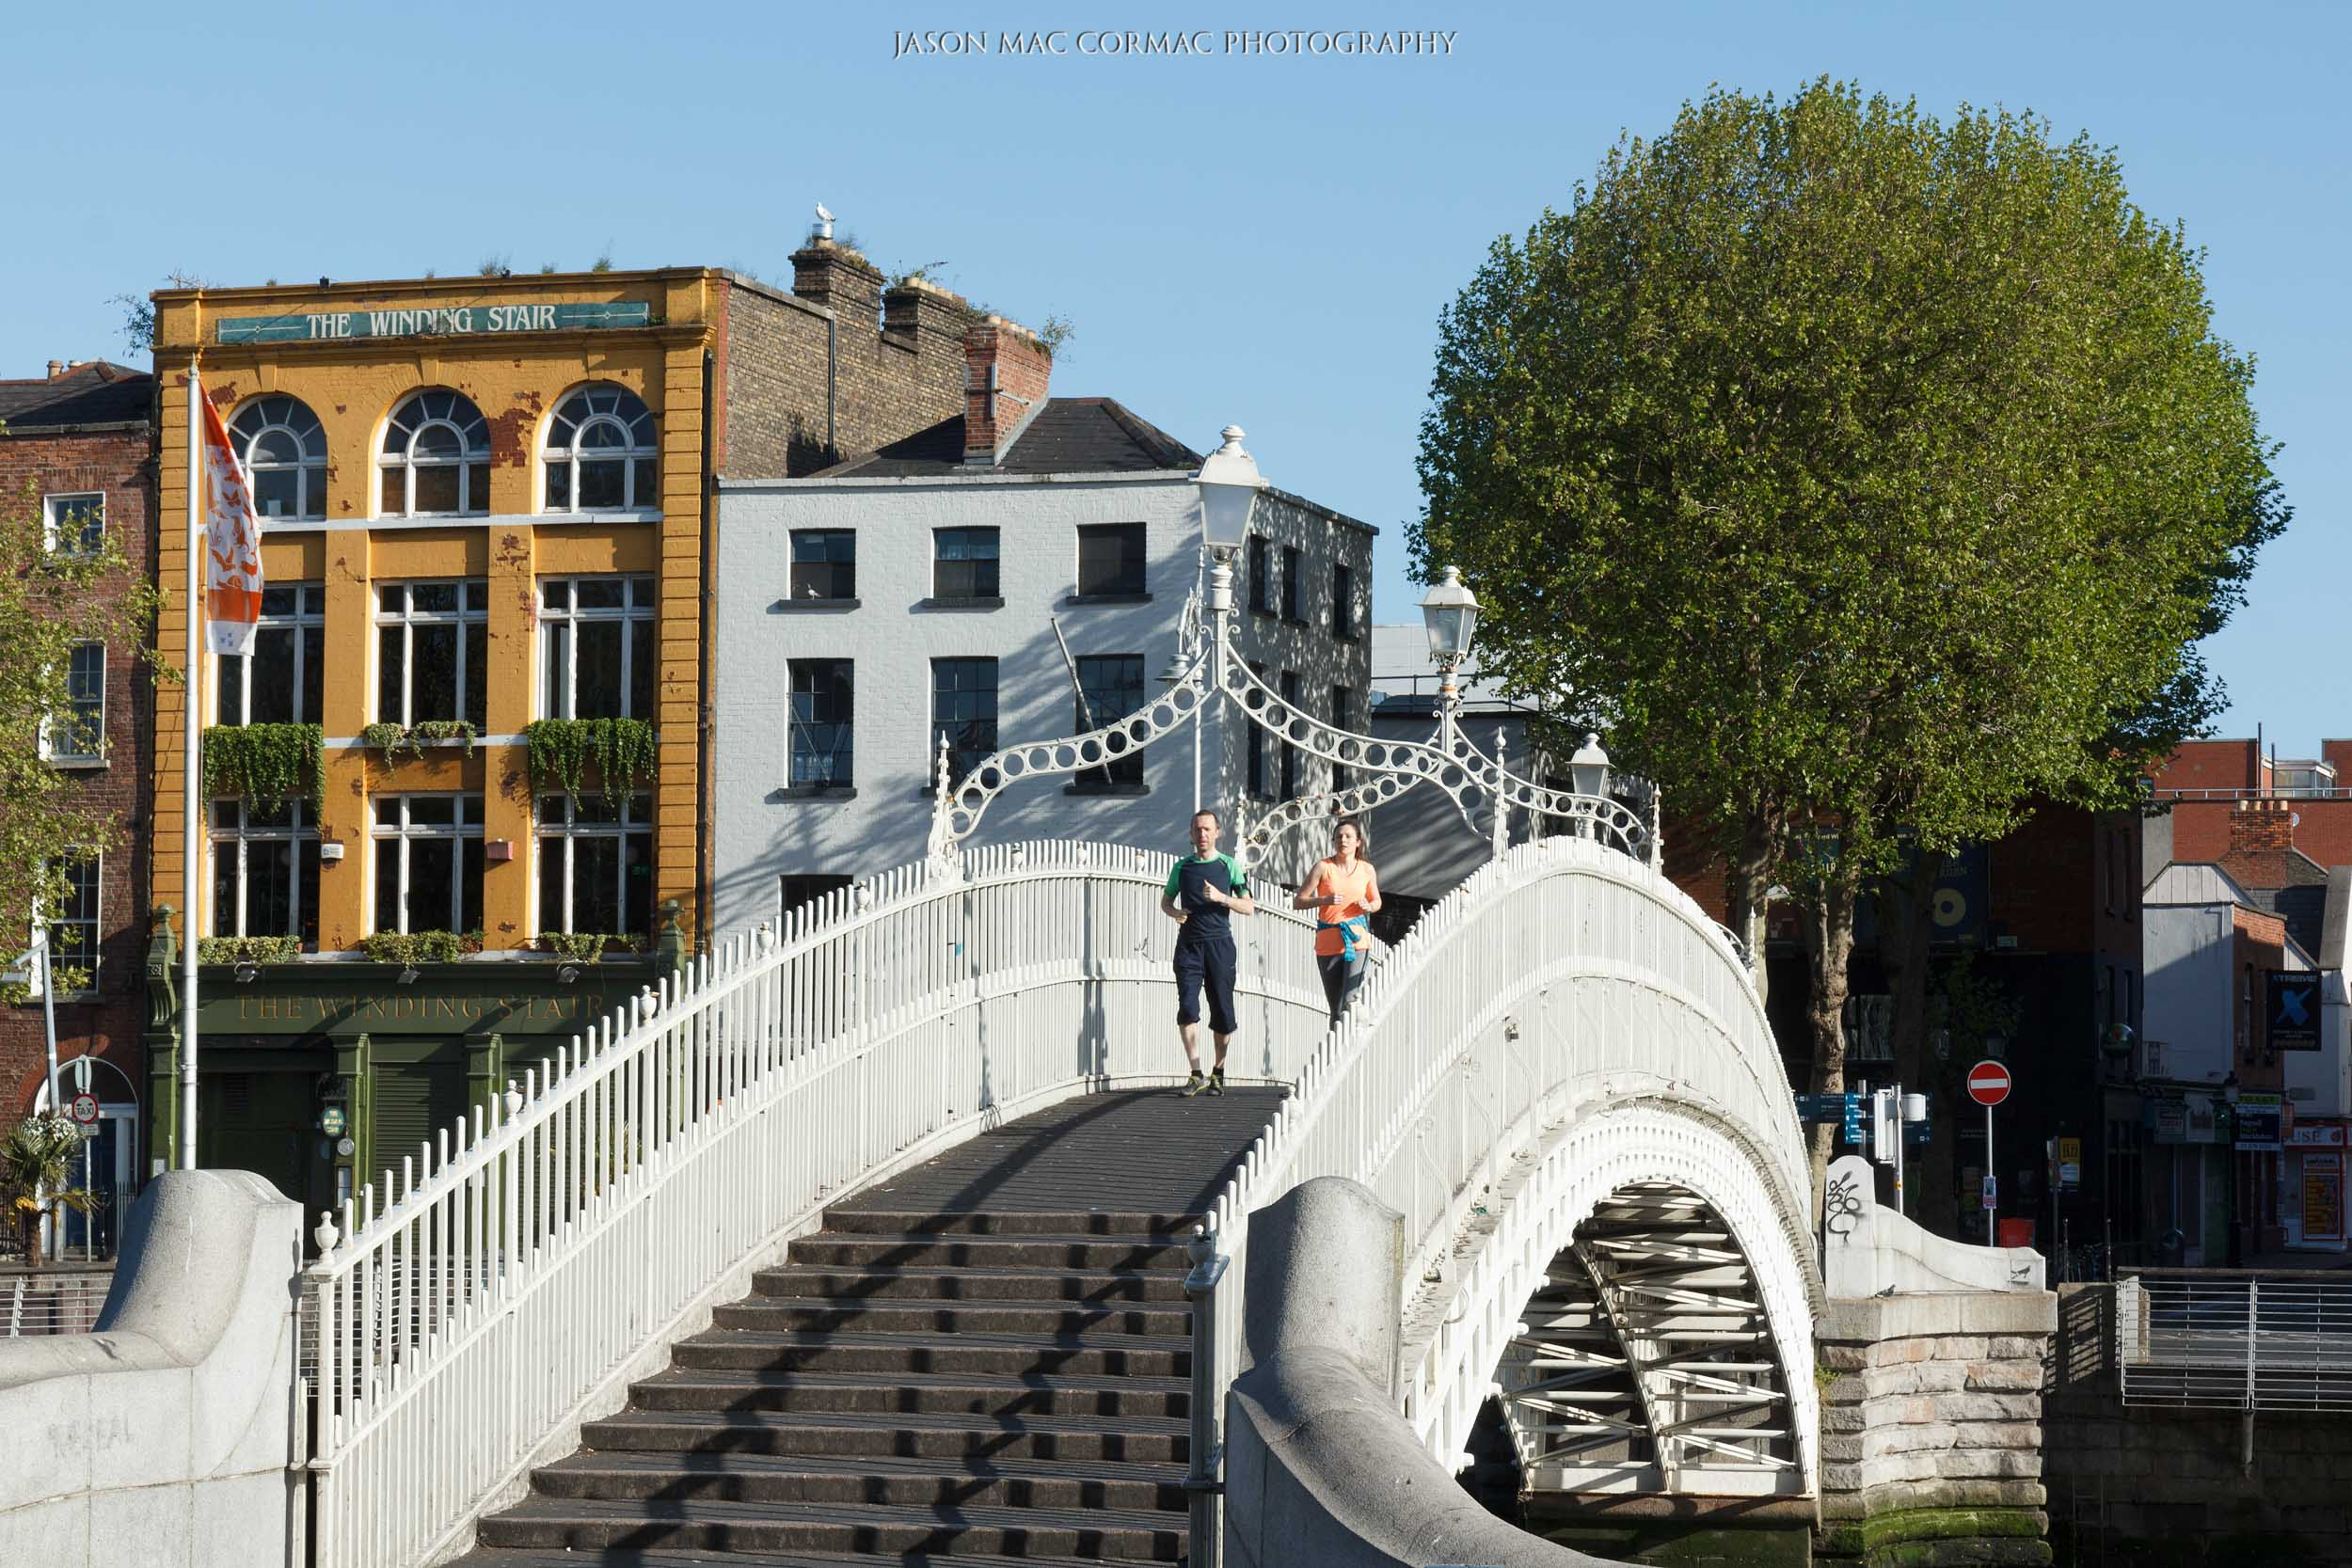 03. Joggers Ha'penny bridge